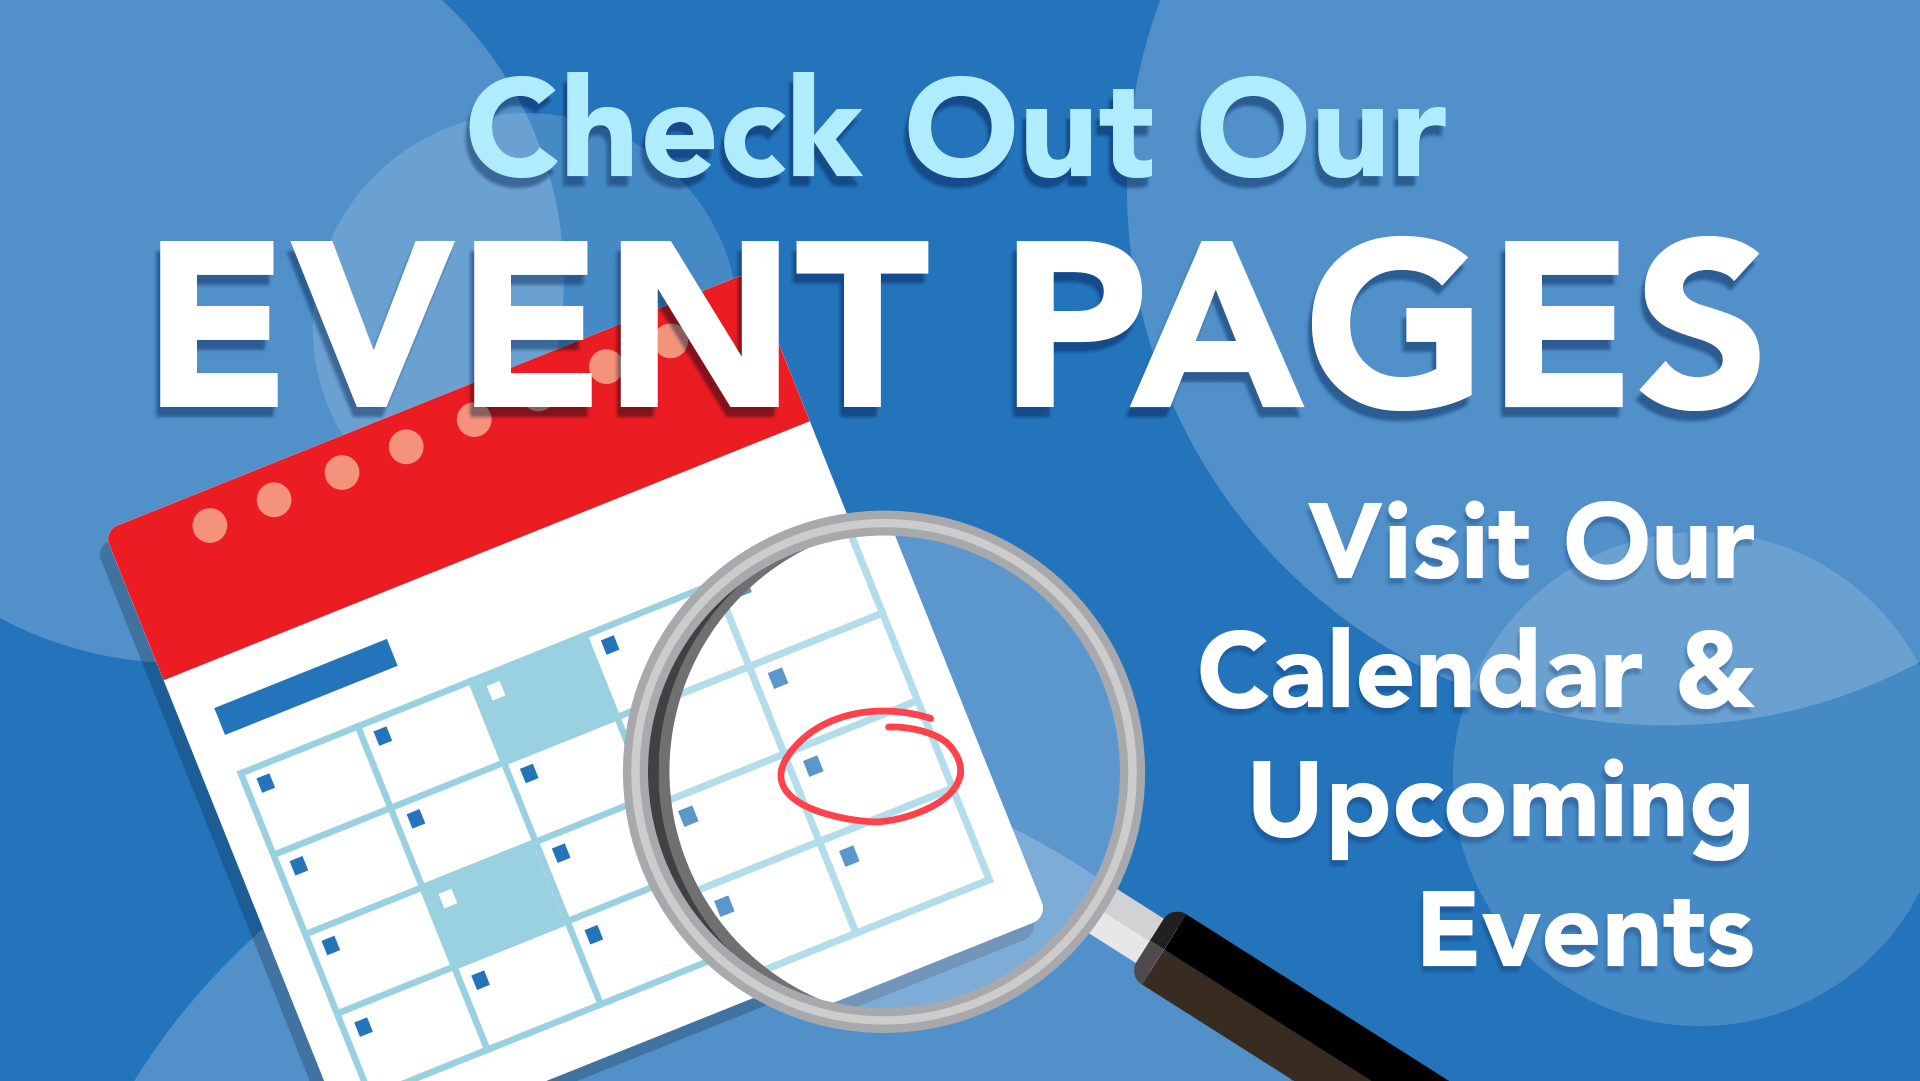 Checkout Our Event Pages - Visit Our Calendar and Upcoming Events!